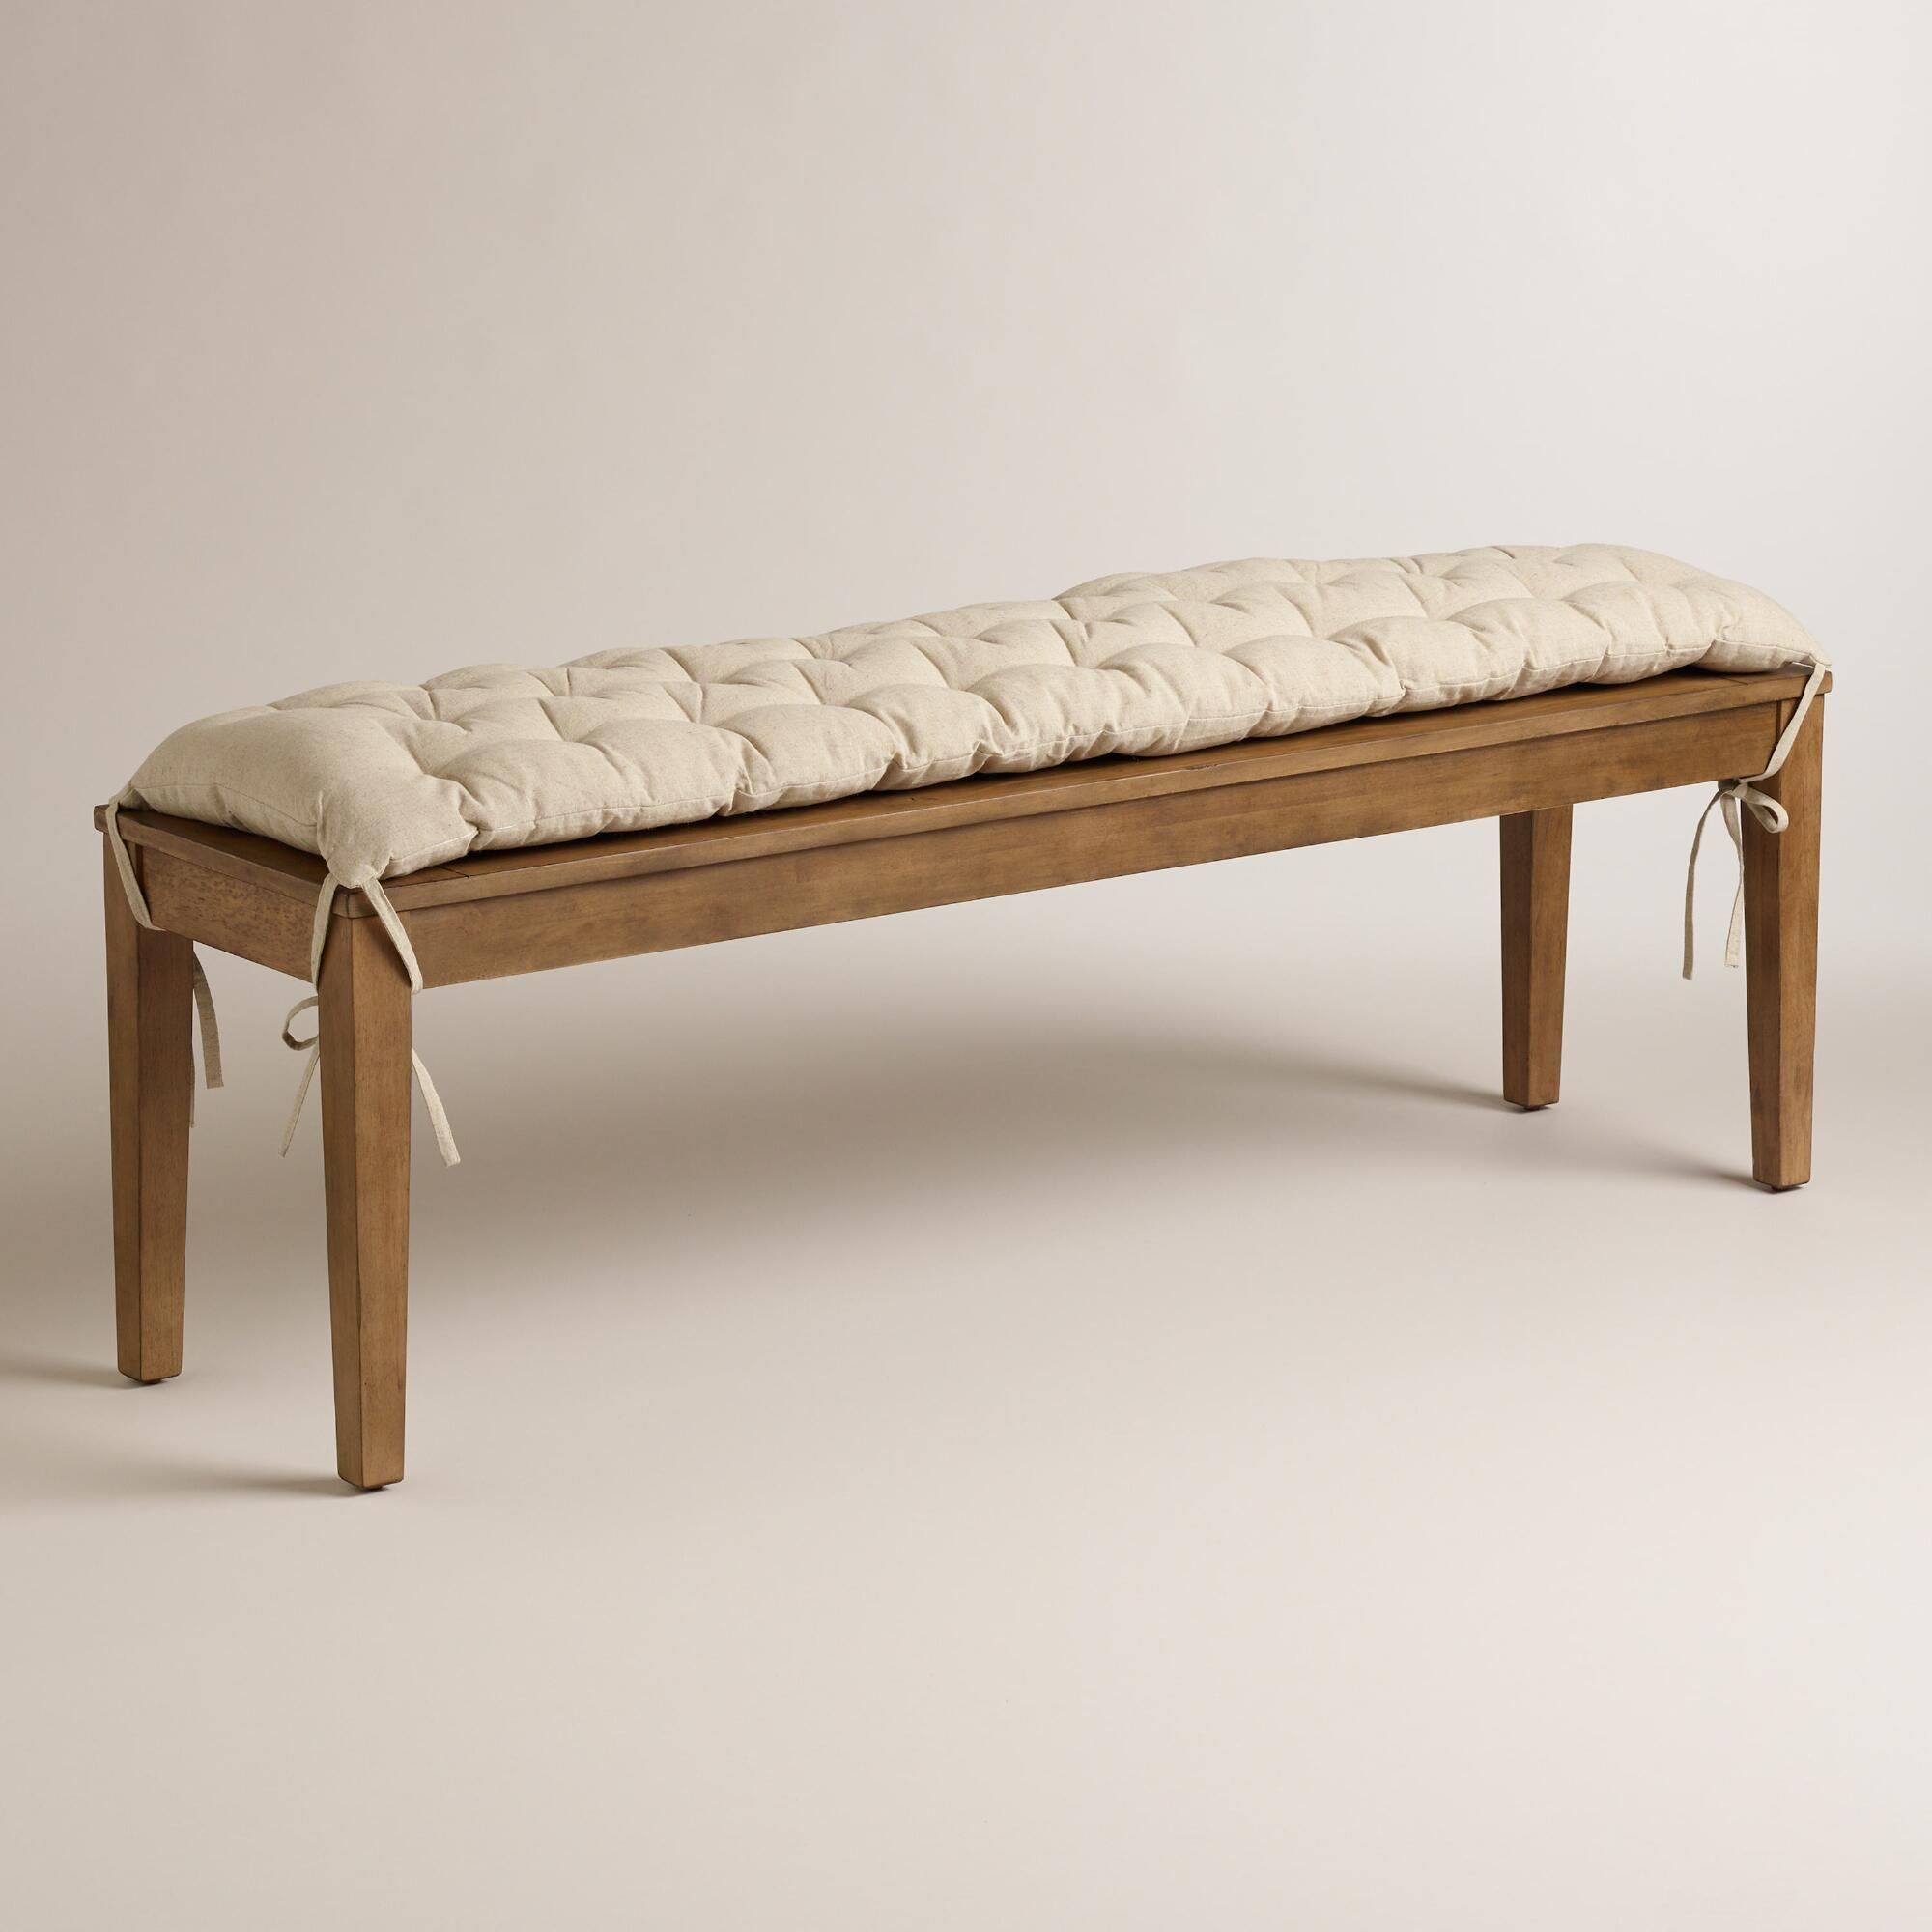 Superb We Crafted This Natural Toned Bench Pad For Our Harrow Machost Co Dining Chair Design Ideas Machostcouk